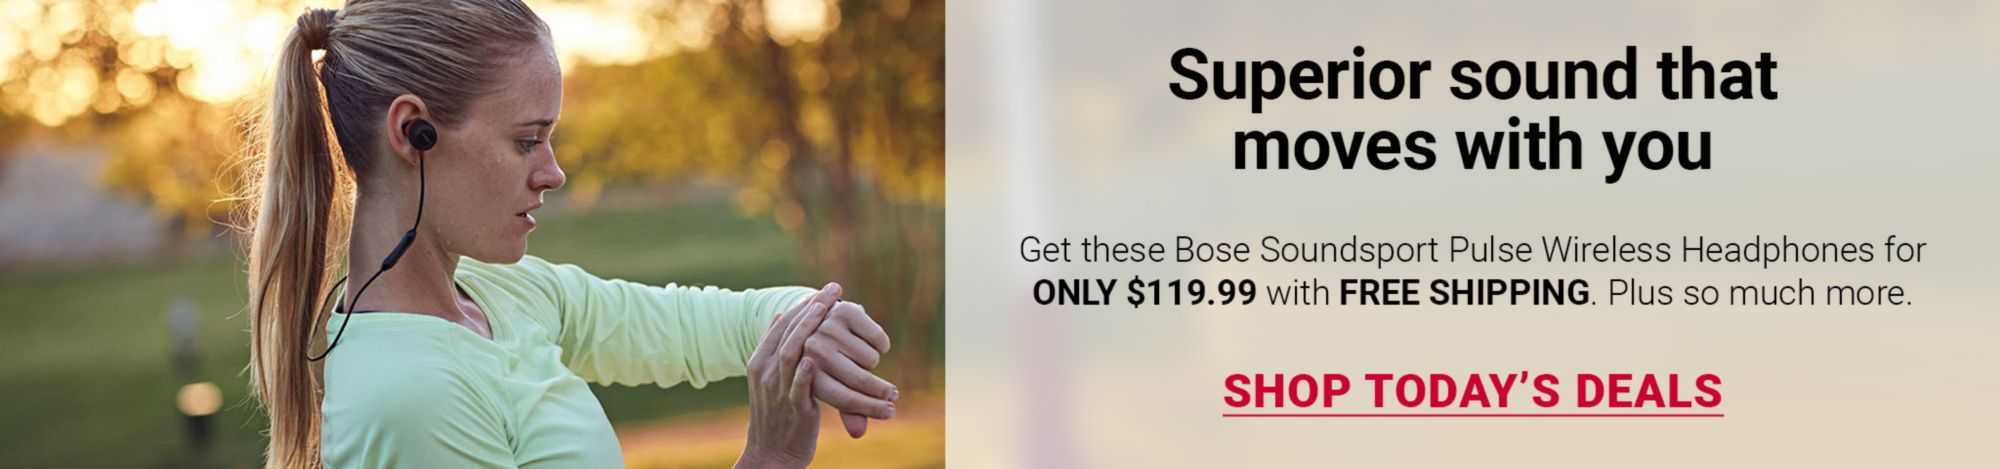 Superior sound that moves with you. Get these Bose Soundsport Pulse Wireless Headphones for ONLY $119.99 with FREE SHIPPING. Plus so much more. Click here to Shop Today's Deals.